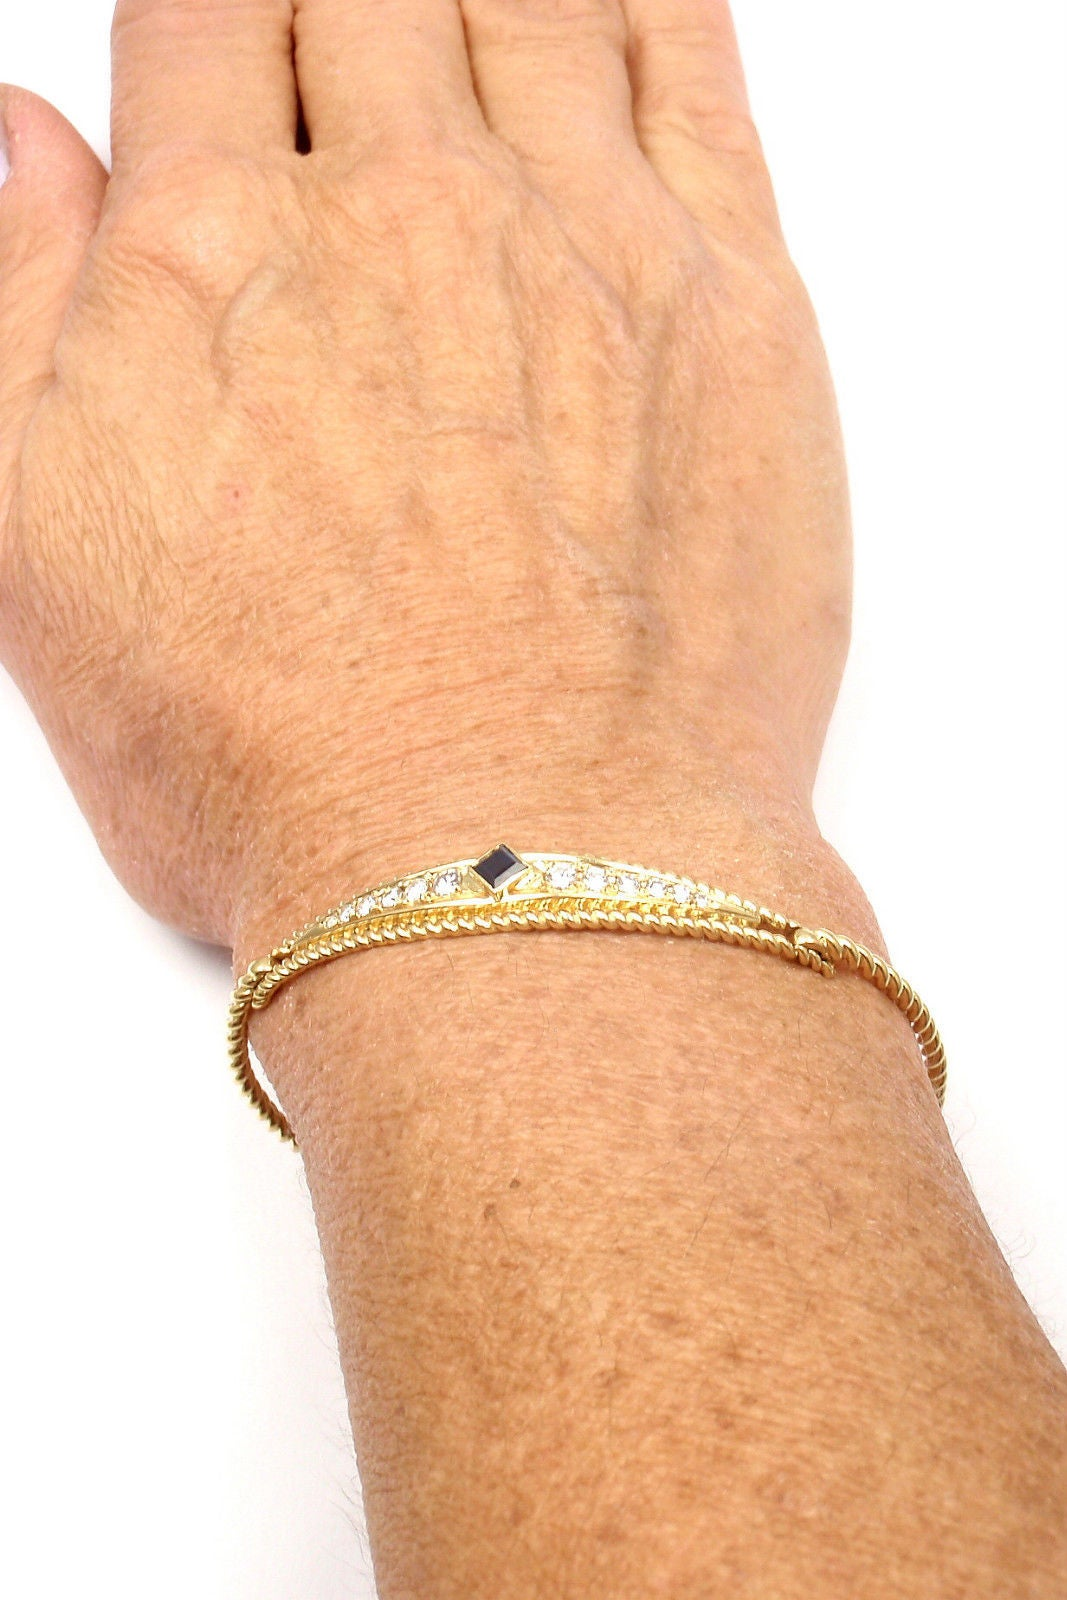 Christian Dior Sapphire Diamond Yellow Gold Bangle Bracelet 8